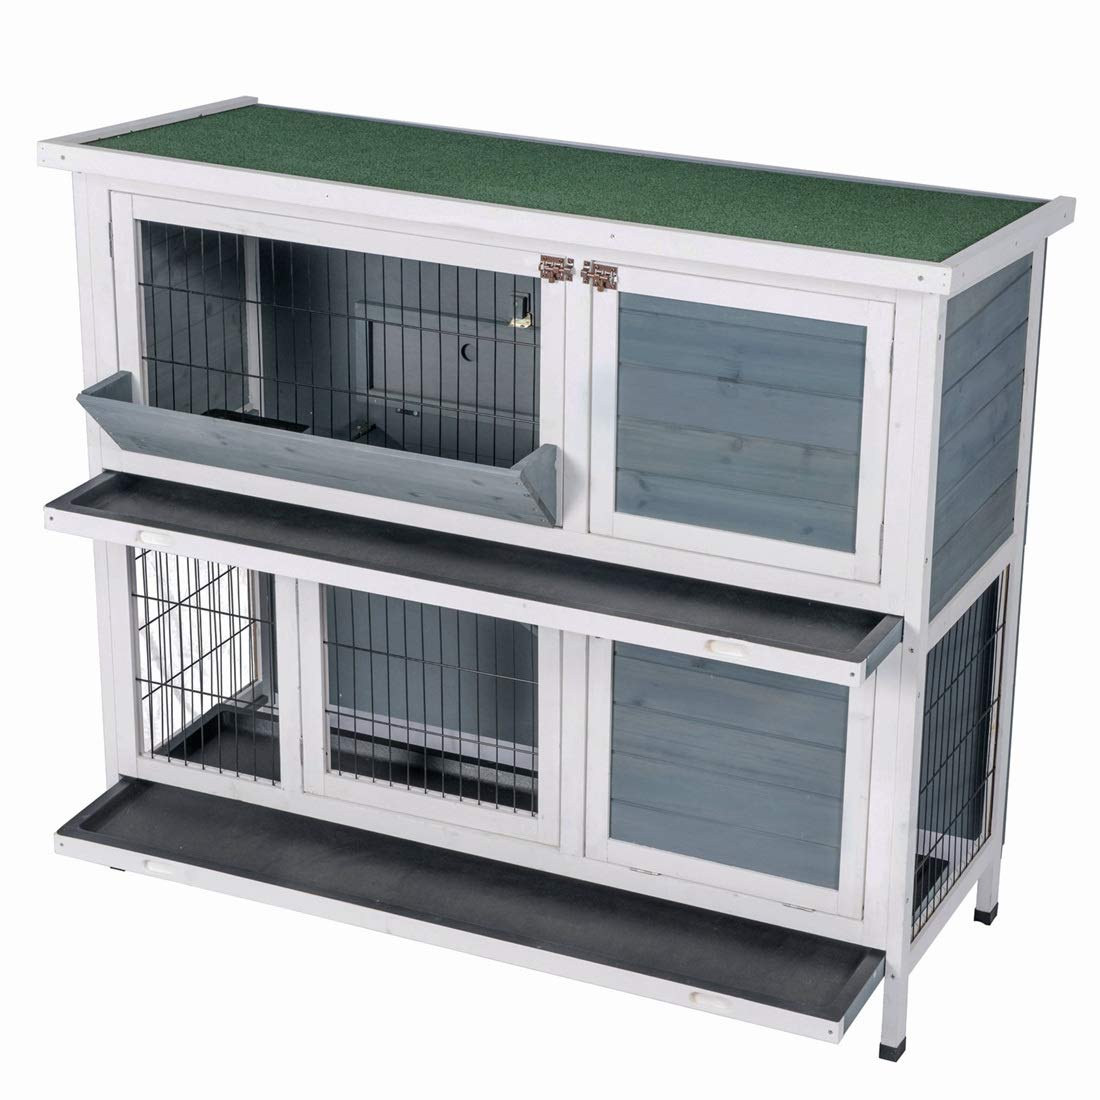 Good Life Two Floors Wooden Outdoor Indoor Bunny Hutch Rabbit Cage with Feeding Trough Guinea Pig Coop PET House for Small Animals Gray & White Color PET548 by GOOD LIFE USA